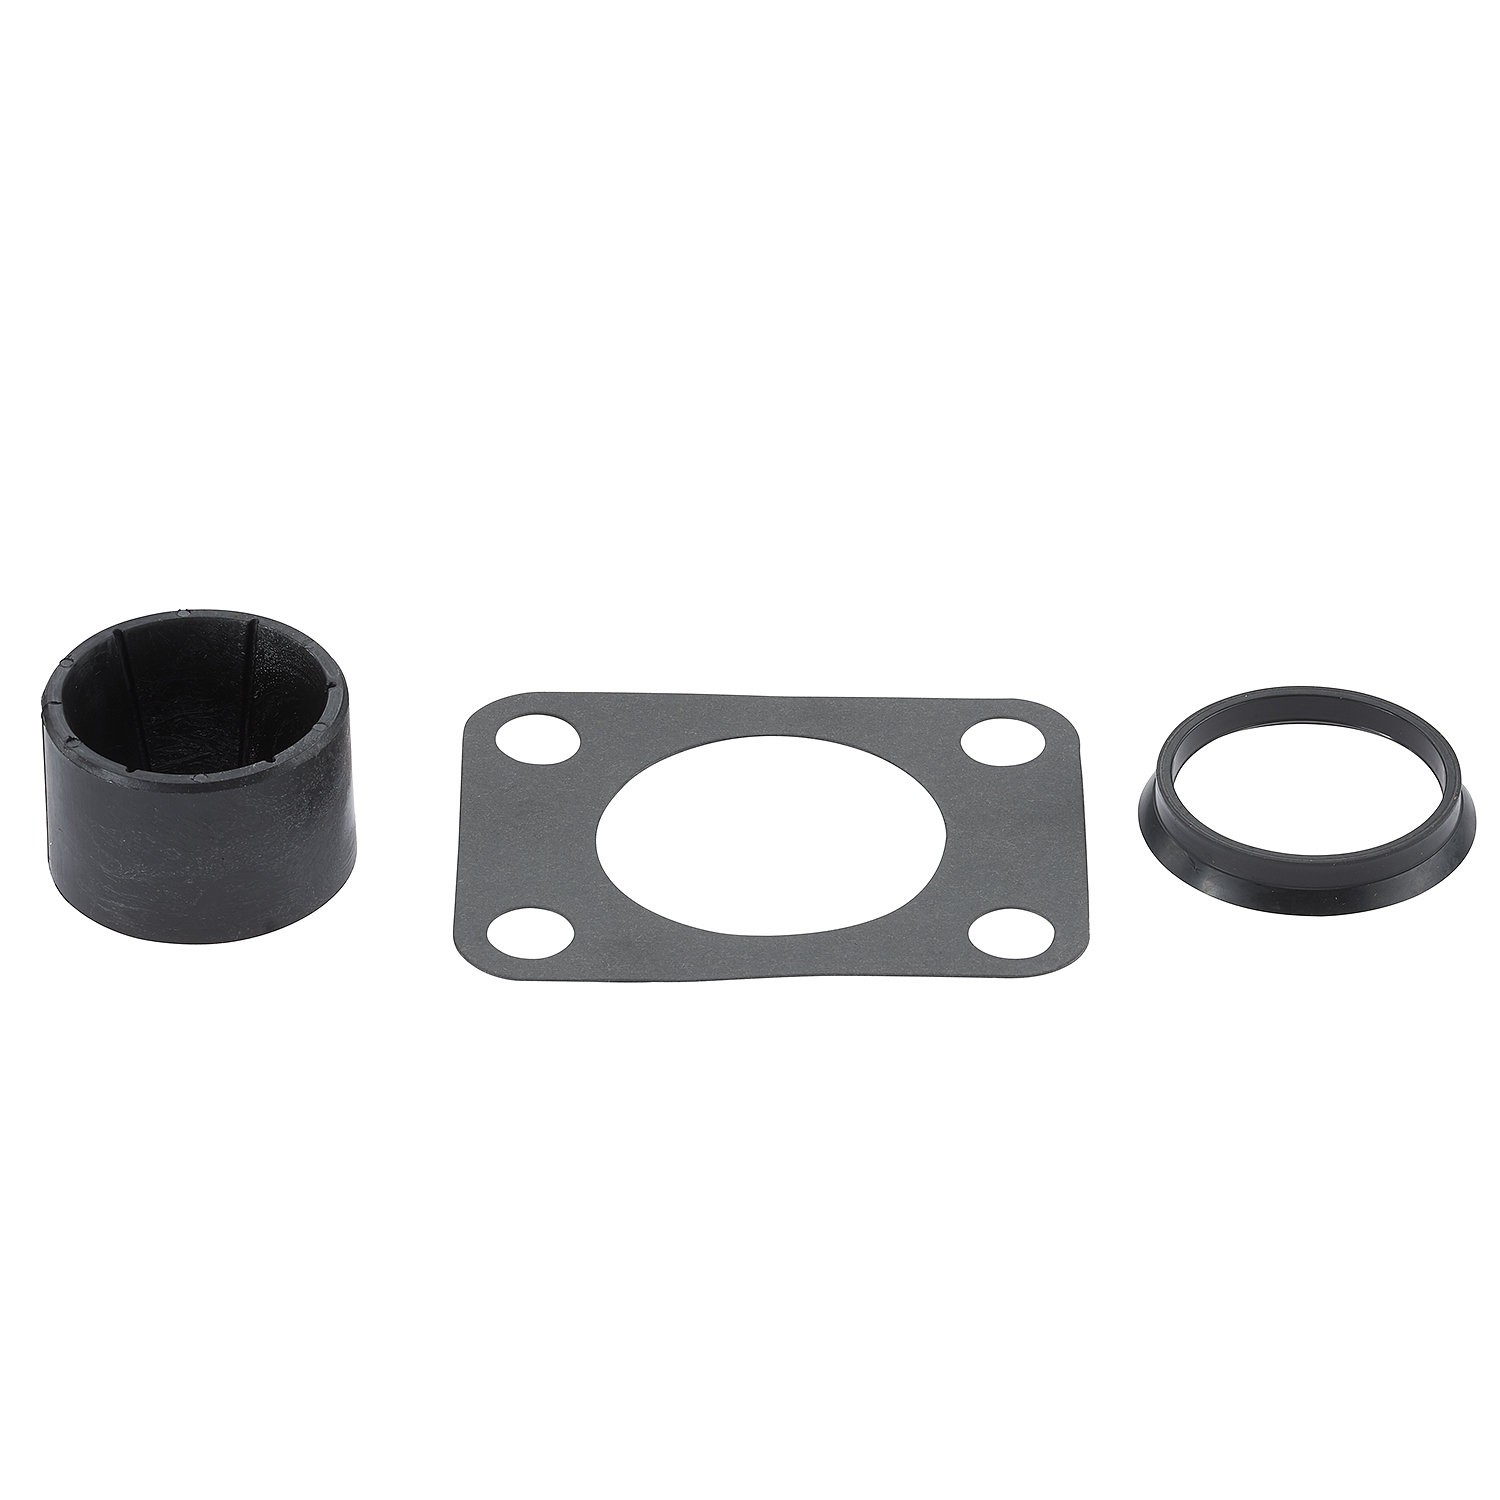 Steering King Pin Repair Kit